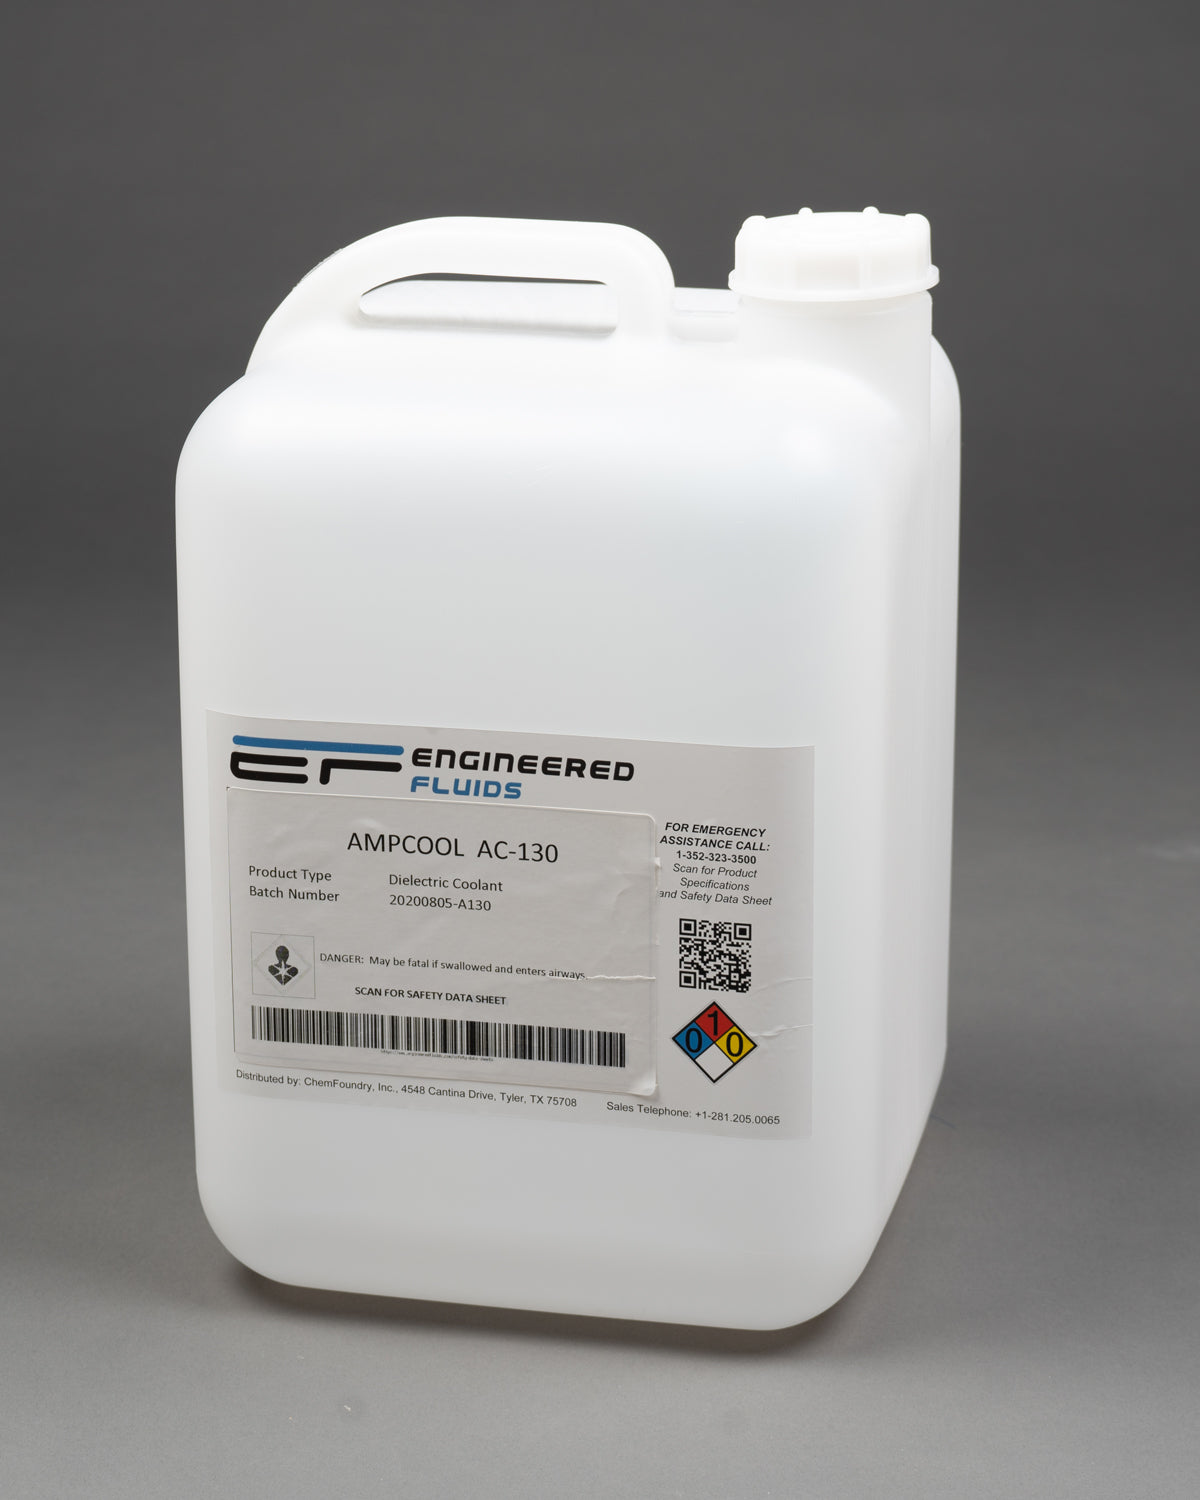 Can, or should Dielectric Coolants be used in automotive vehicles? The cost would be an obvious issue.